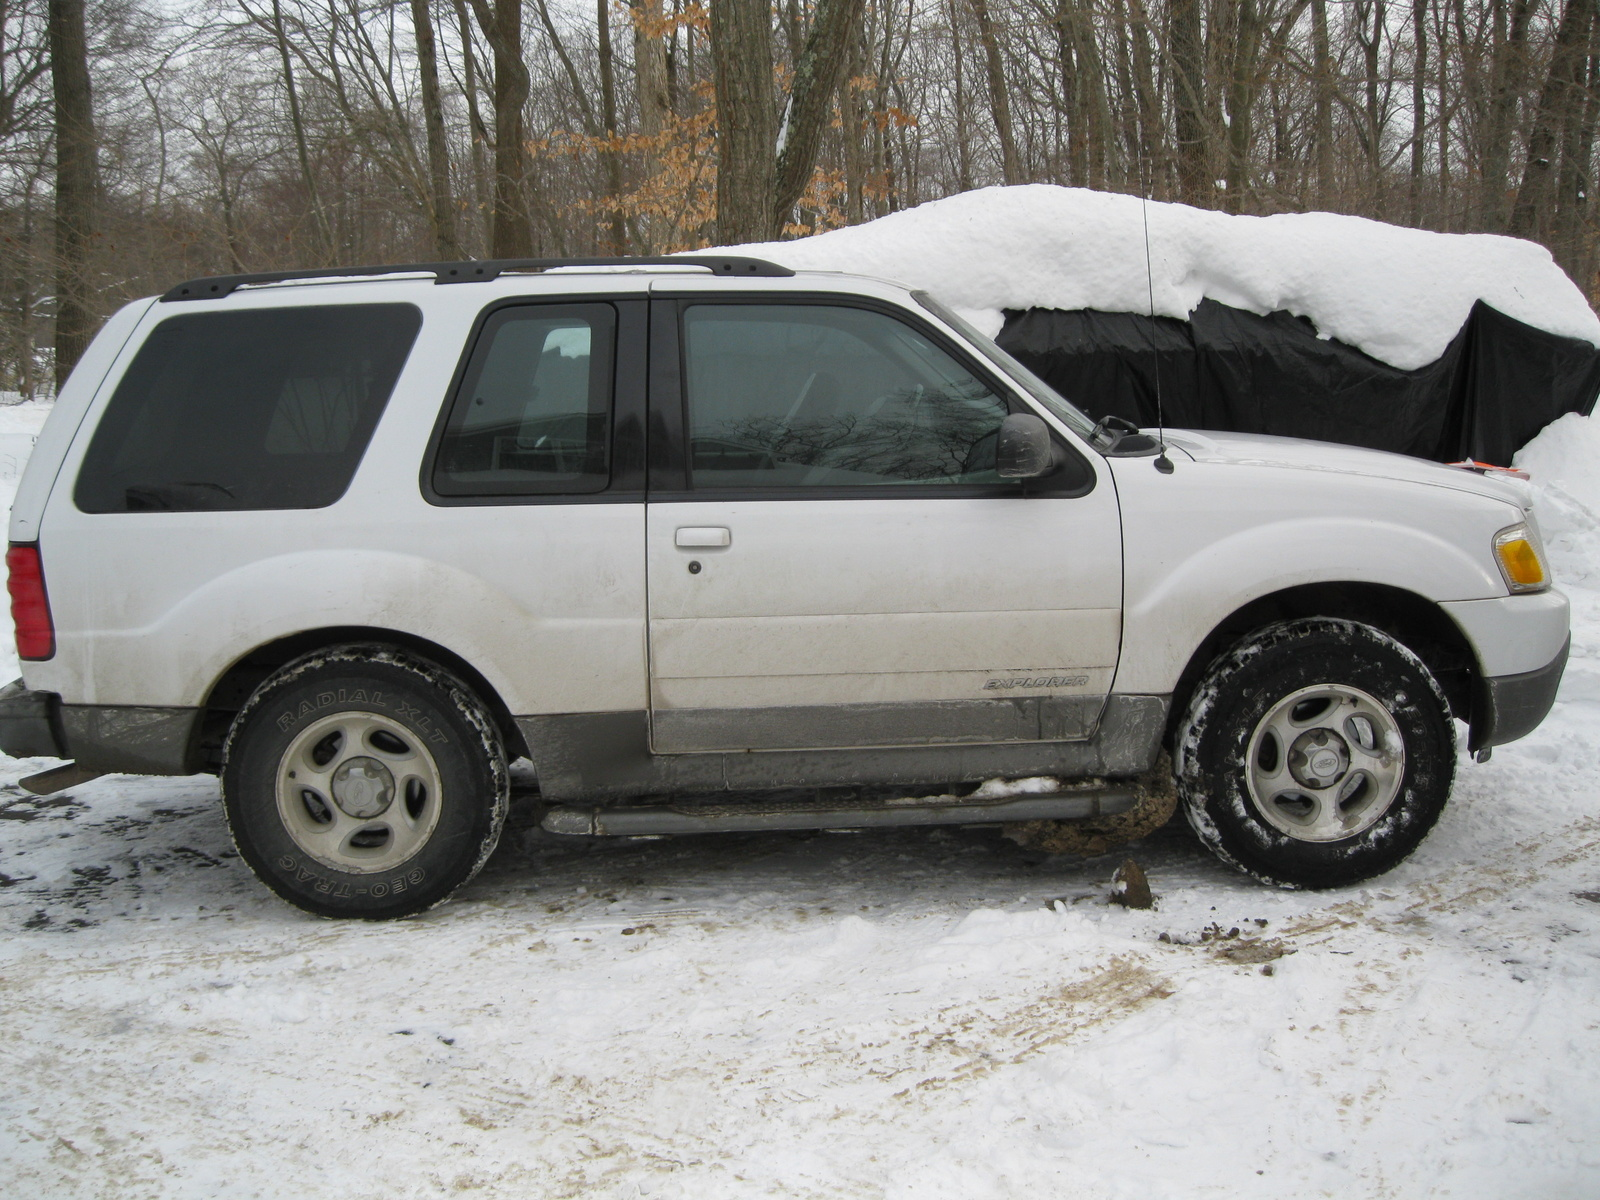 2001 ford explorer sport 2 dr std 4wd suv picture exterior. Cars Review. Best American Auto & Cars Review